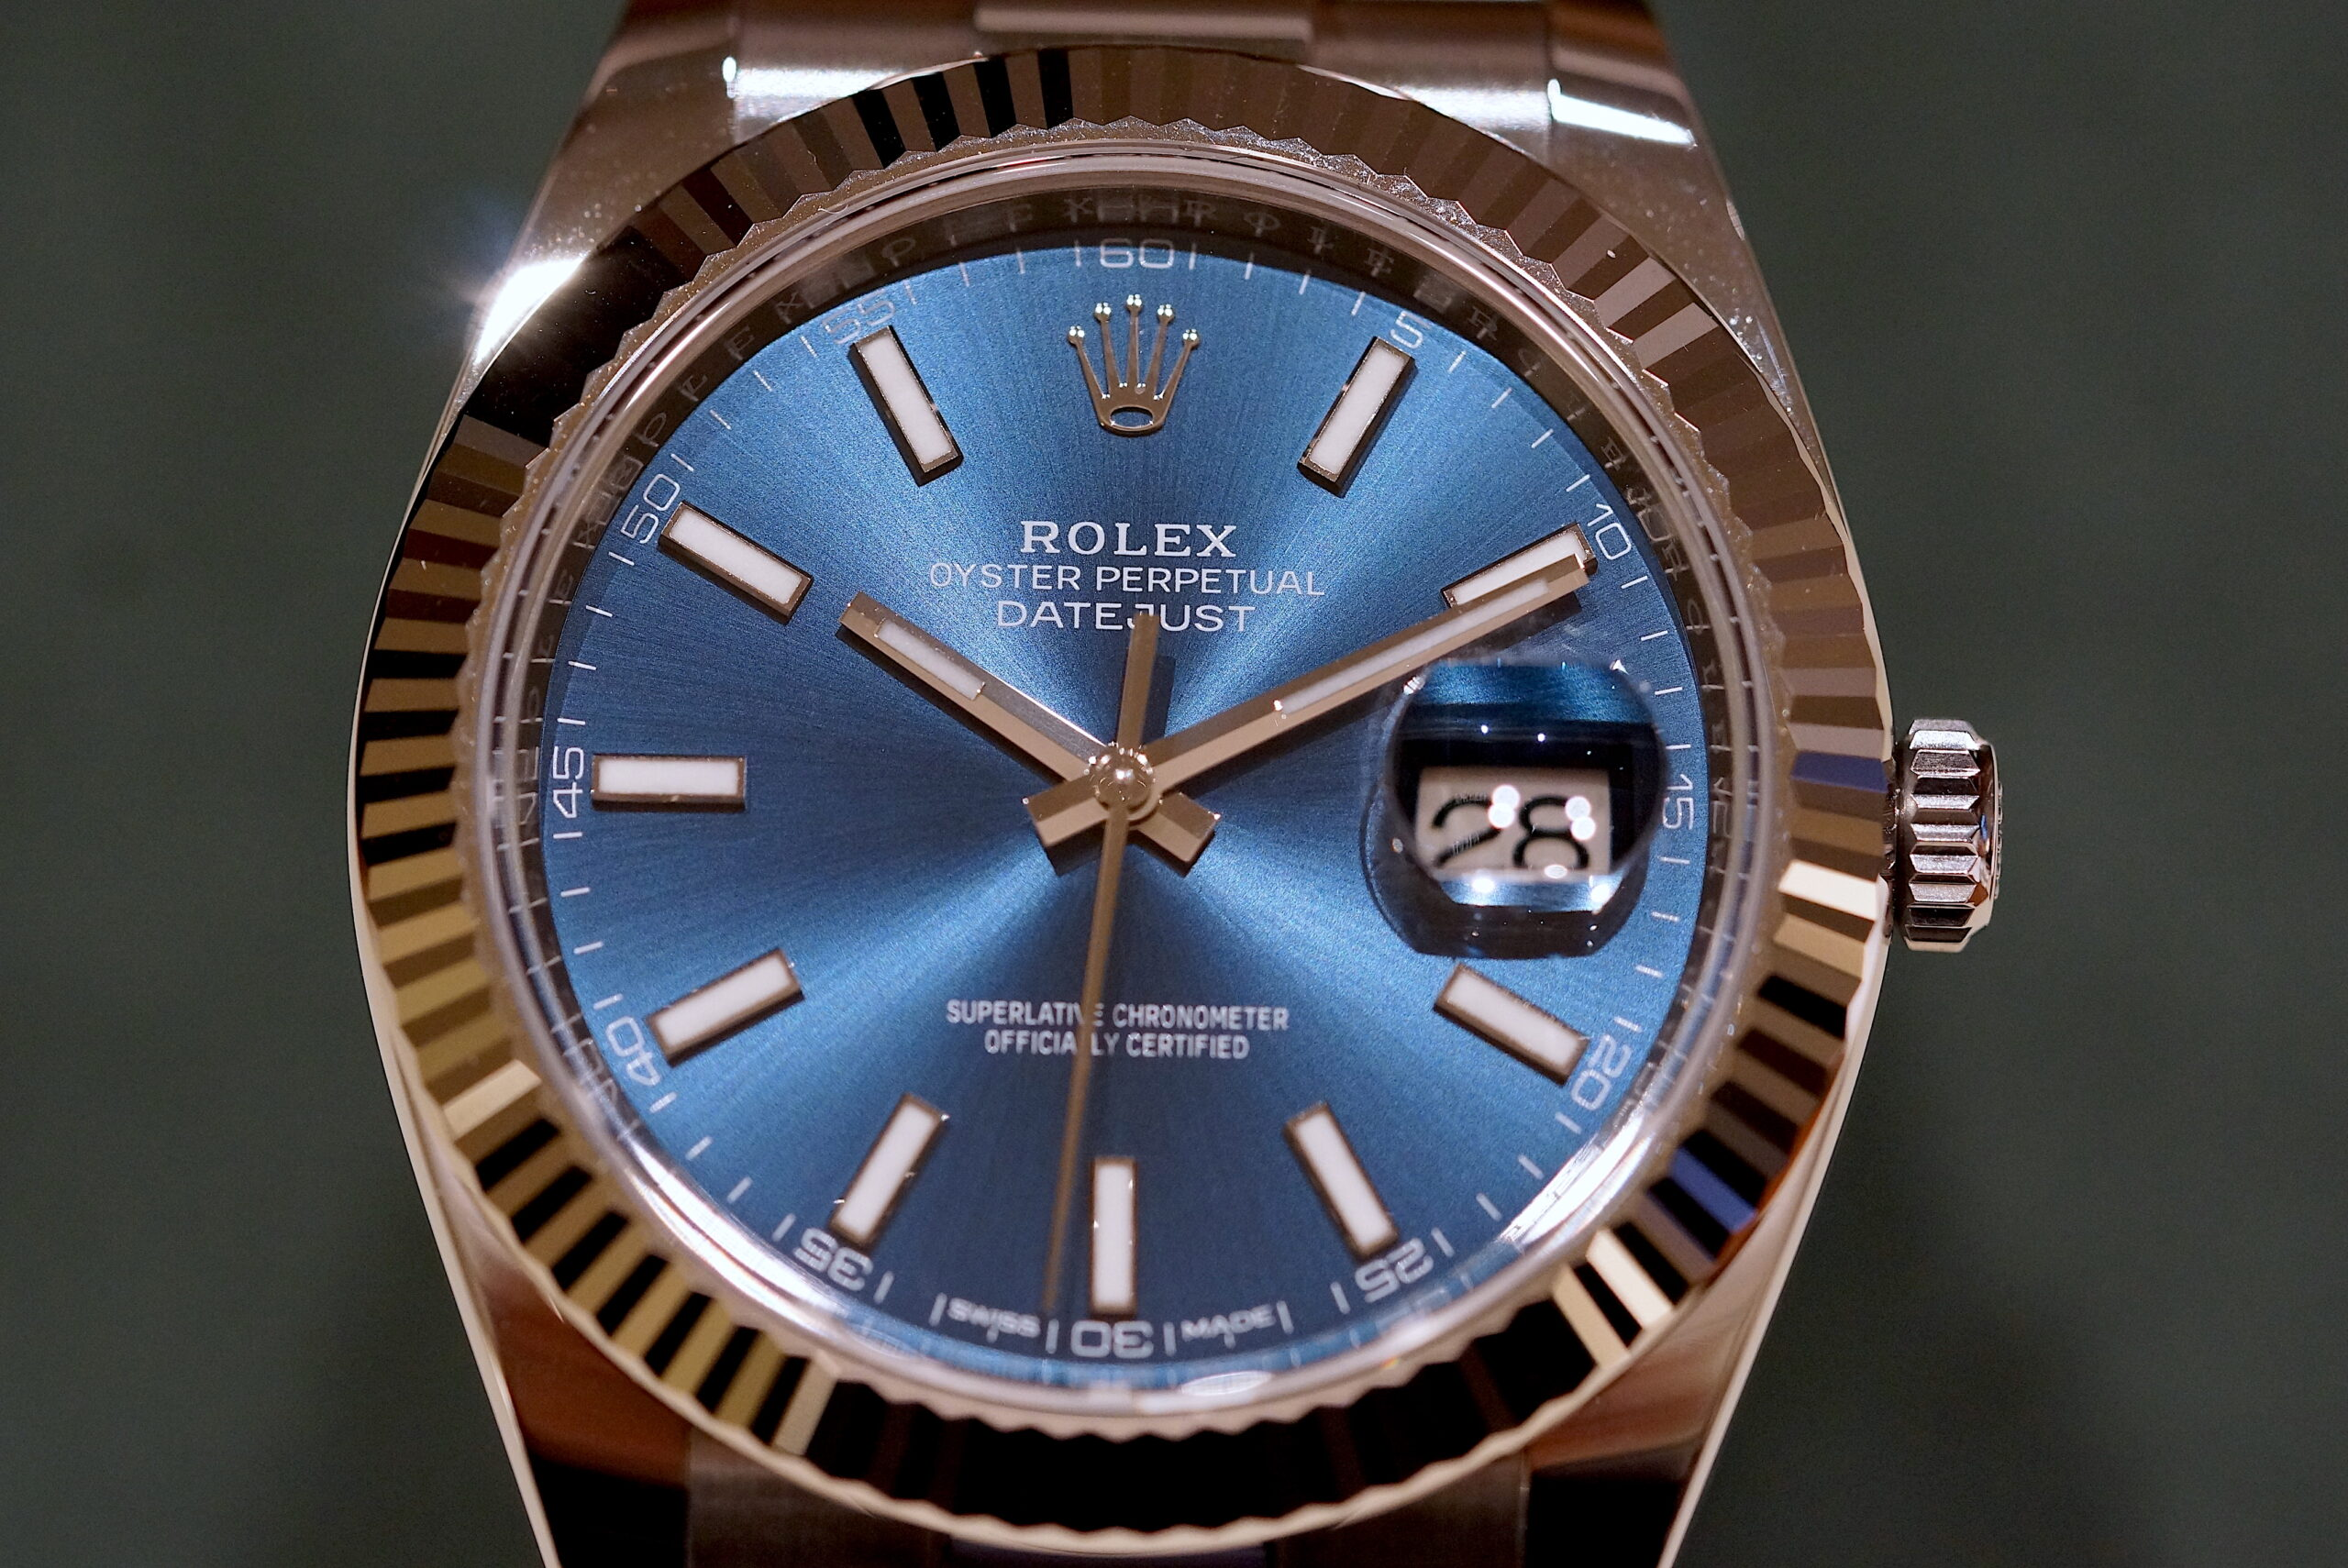 Rolex Oyster Perpetual 'Datejust'